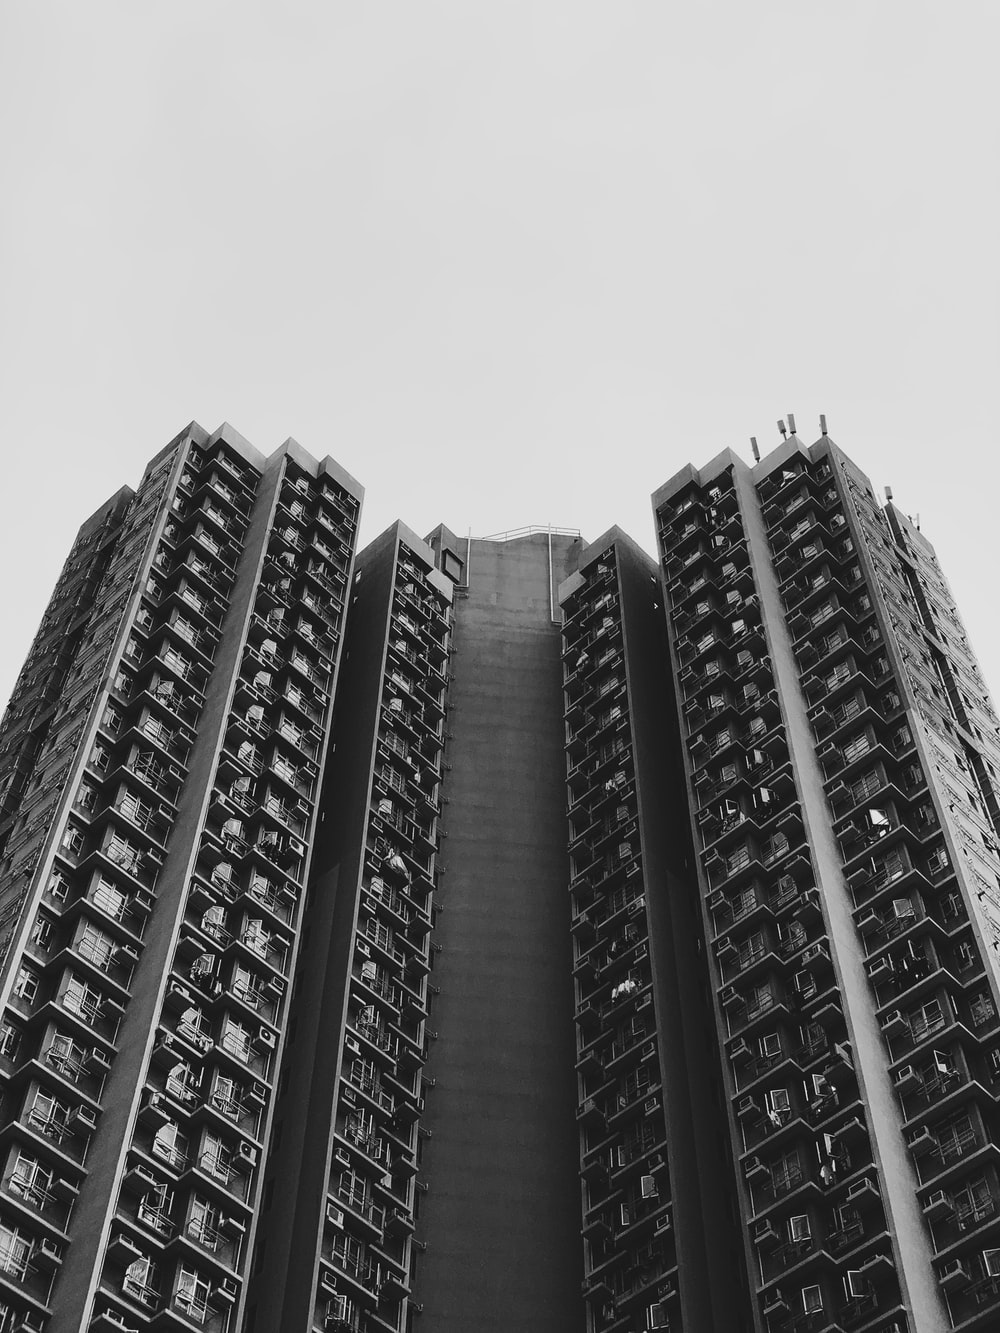 low angle photo of high rise buildings